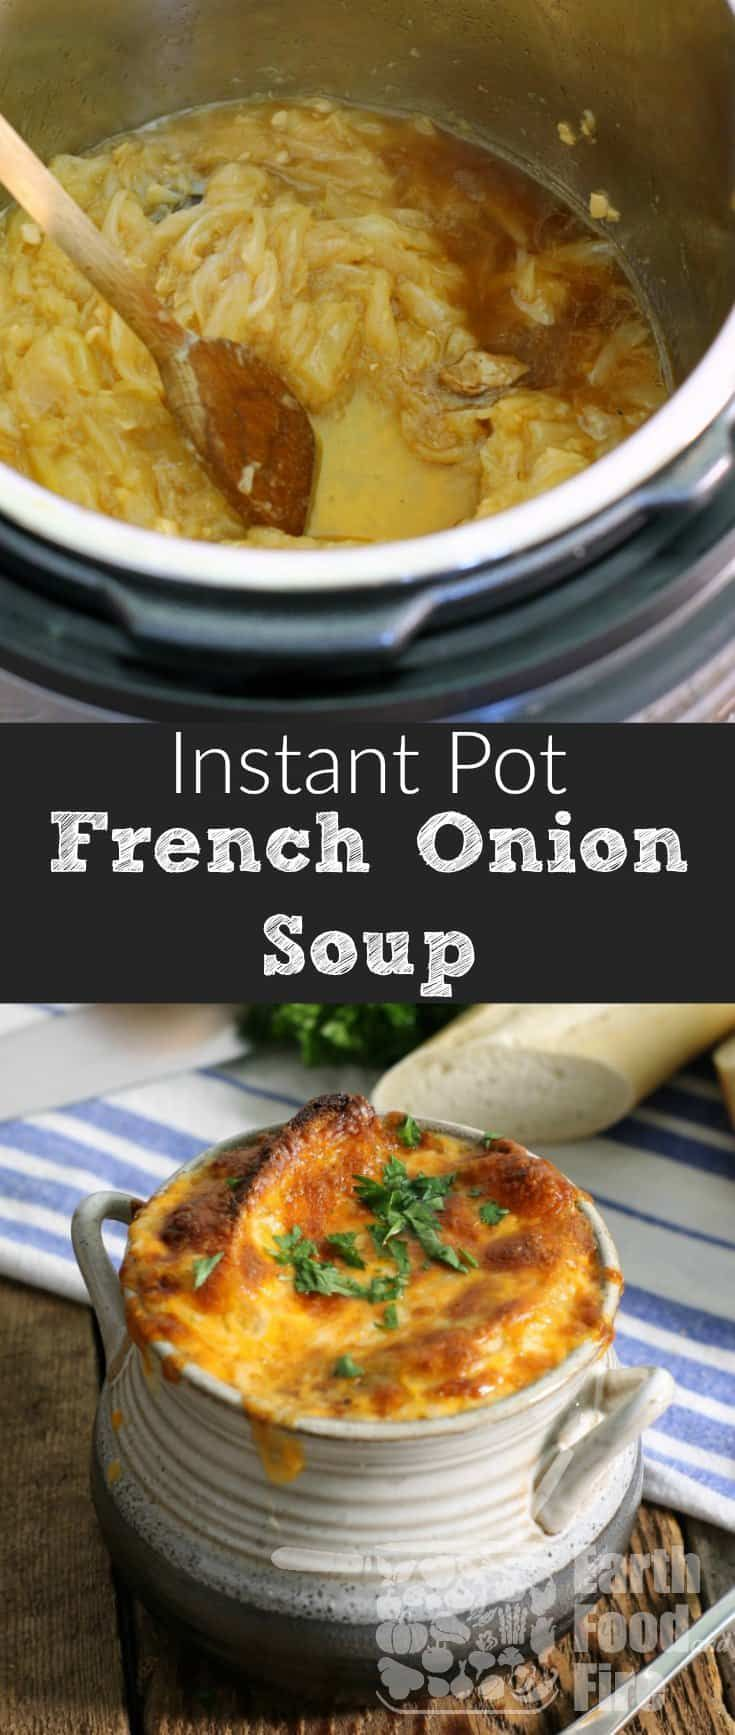 A classic soup full of sweet caramelized onions, rich beef broth, and topped with cheesy goodness, making restaurant quality French onion soup couldn't be easier then this! #glutenfree #dairyfree #lactosefree #frenchonionsoup #instantpot #onion #soup #appetizer #entree #beefbroth #cheesy #healthy #homemade #classic #traditional #baked #howtomake